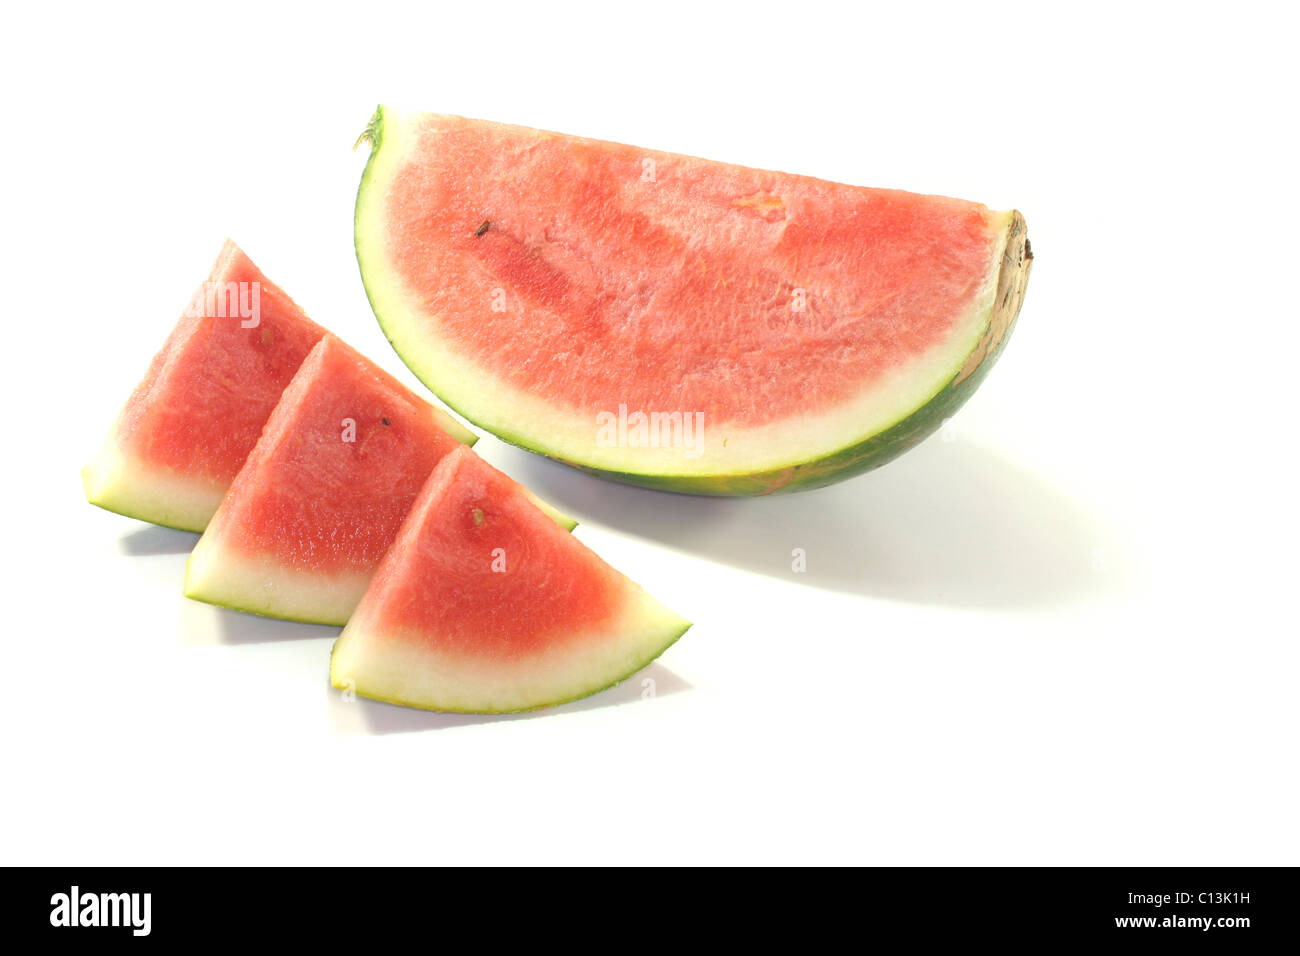 Watermelon quartered with individual slices on white background - Stock Image